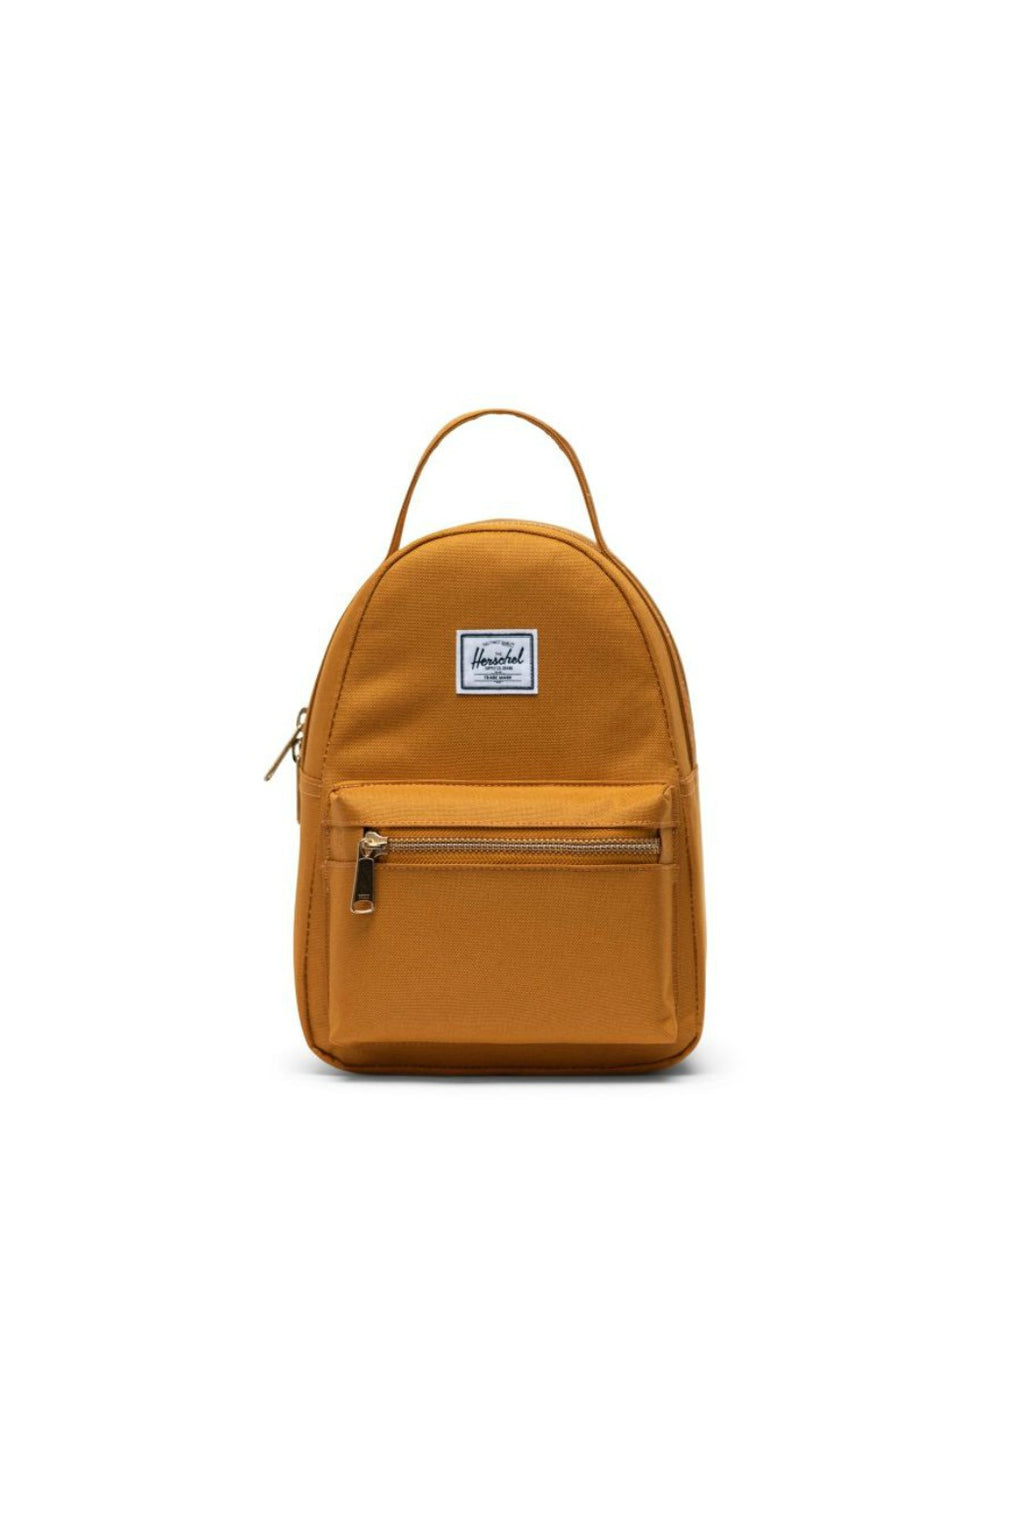 Herschel Supply Co. Nova Mini Poly - Buckthorn Brown